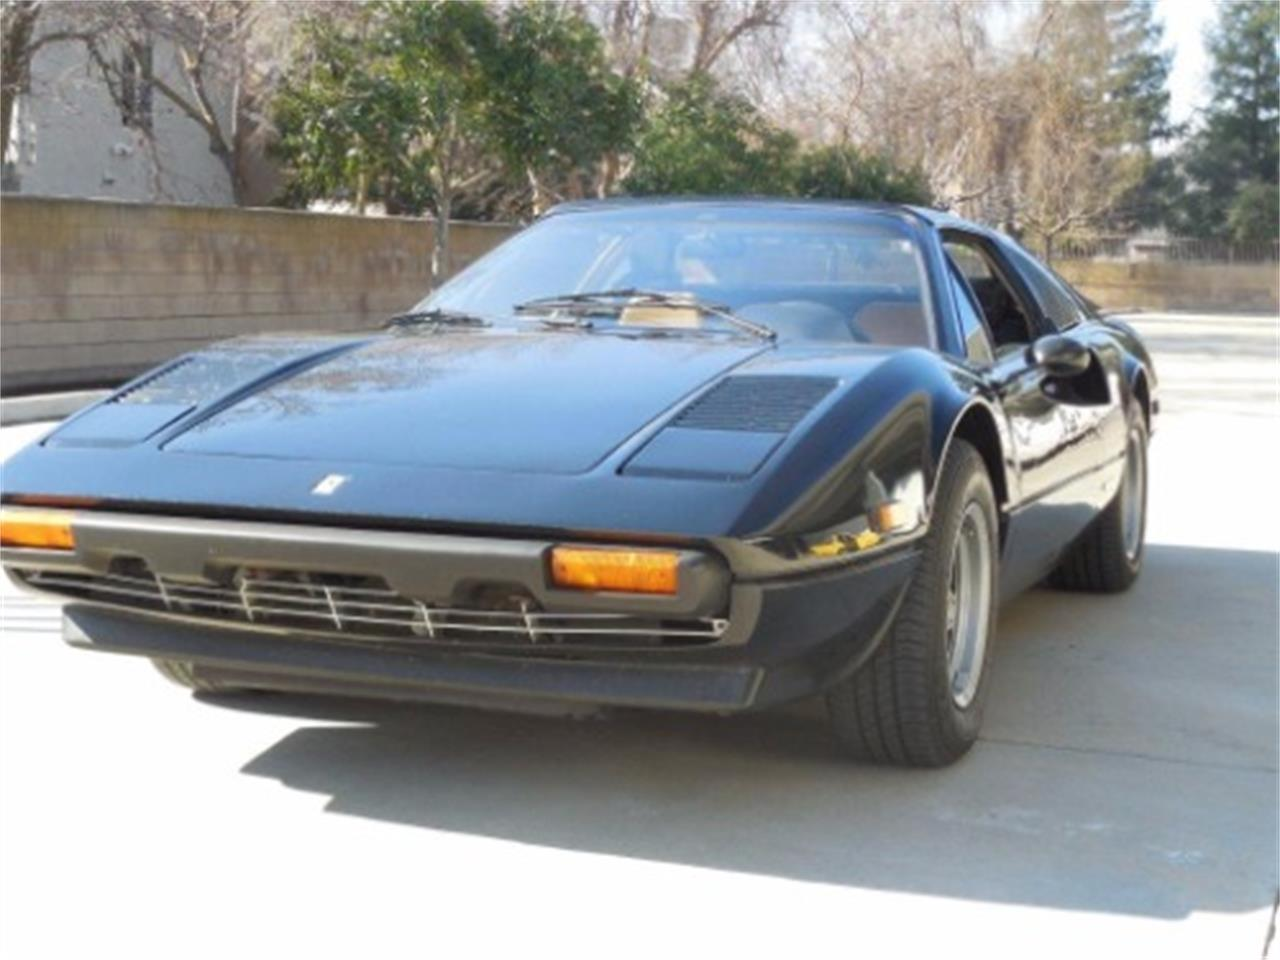 Large Picture of '78 Ferrari 308 GTSI located in Astoria New York - $52,500.00 Offered by Gullwing Motor Cars - KC35